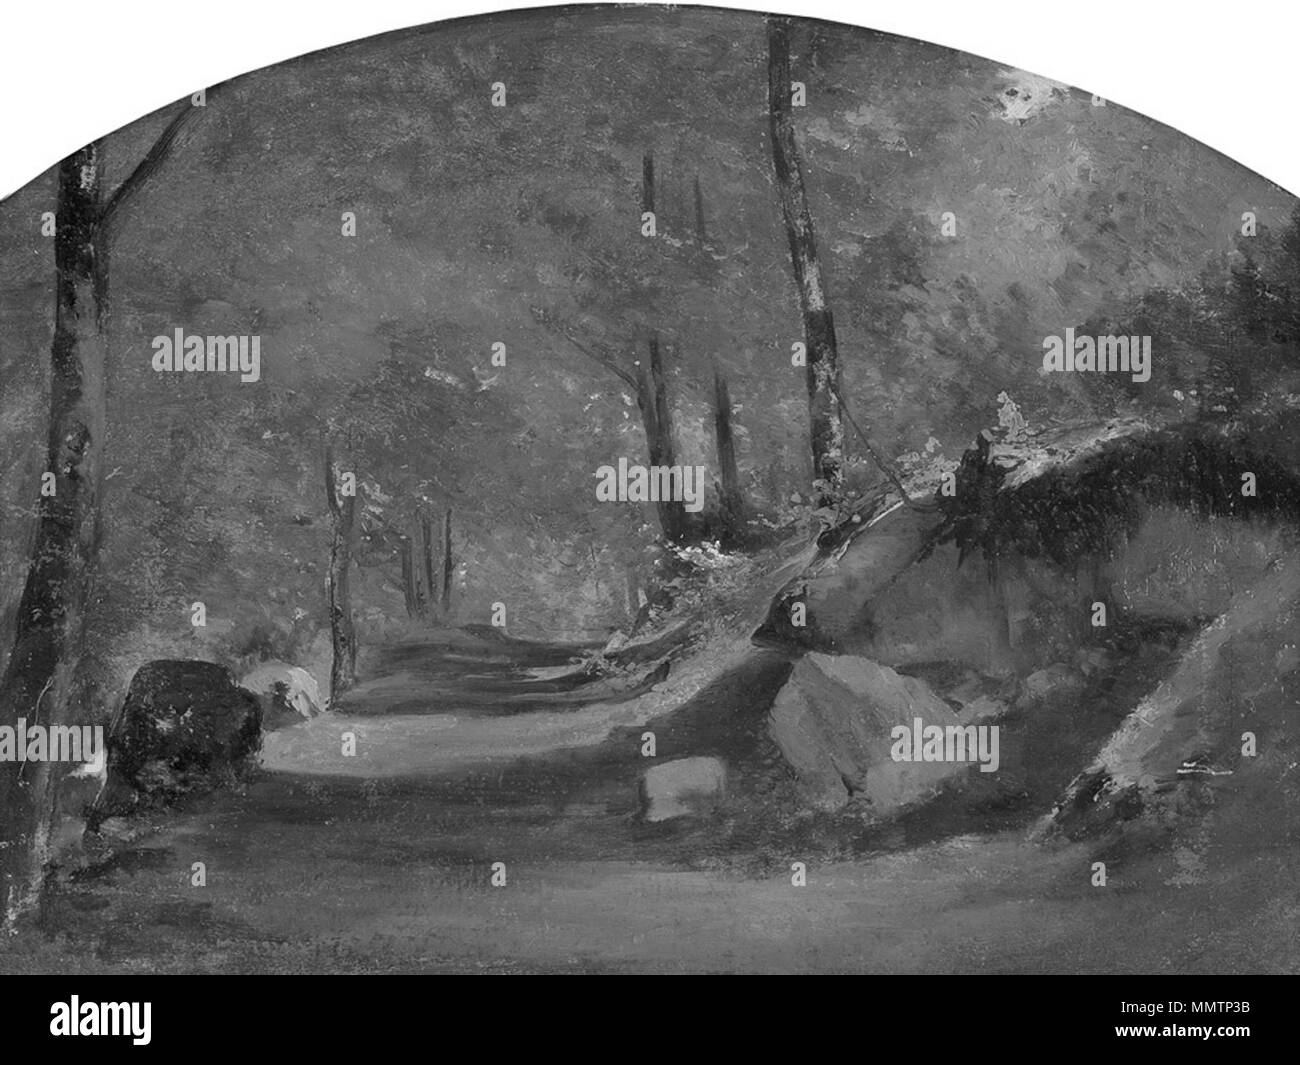 English Painting Of Calame In Greyscale To Illustrate The Quality Contrast Original Painting In Thumbnail Calame Waldweg 19th Century Original Paintings Changed Into Greyscale By Uploader Calame Waldweg In Greyscale